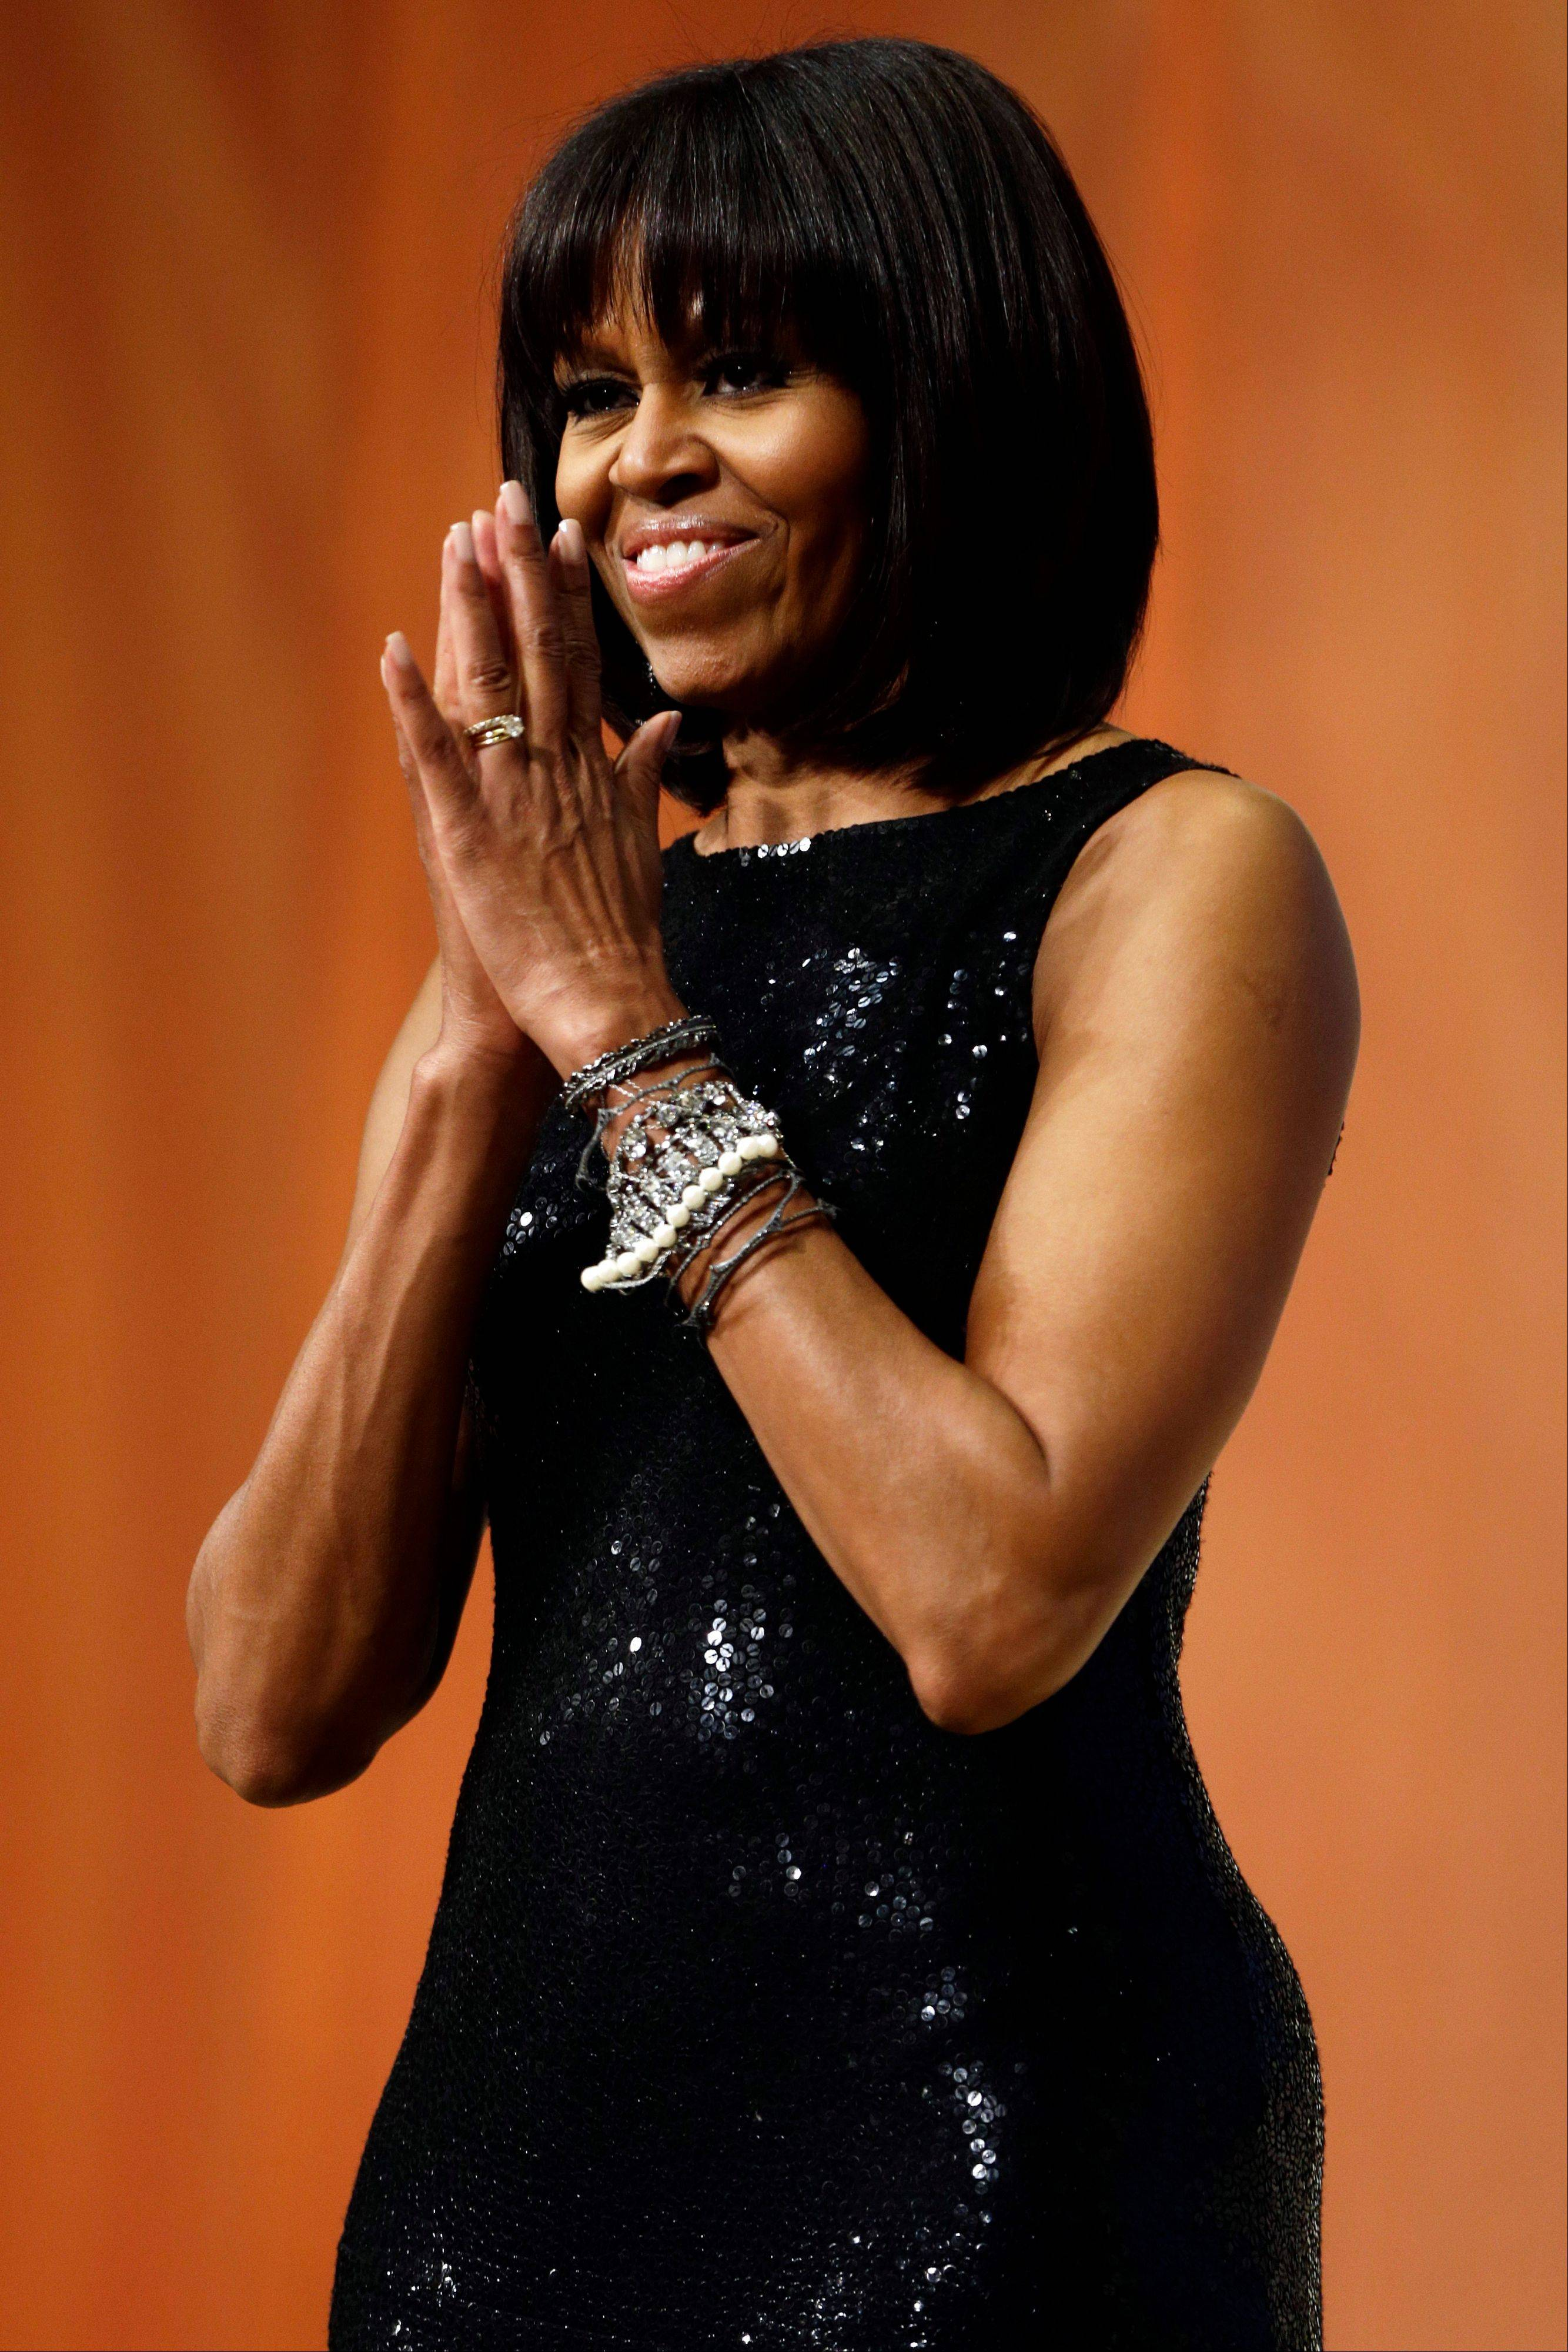 ASSOCIATED PRESS First lady Michelle Obama acknowledges the crowd as President Obama speaks to supporters and donors at an inaugural reception for the 57th Presidential Inauguration at The National Building Museum in Washington on Sunday.